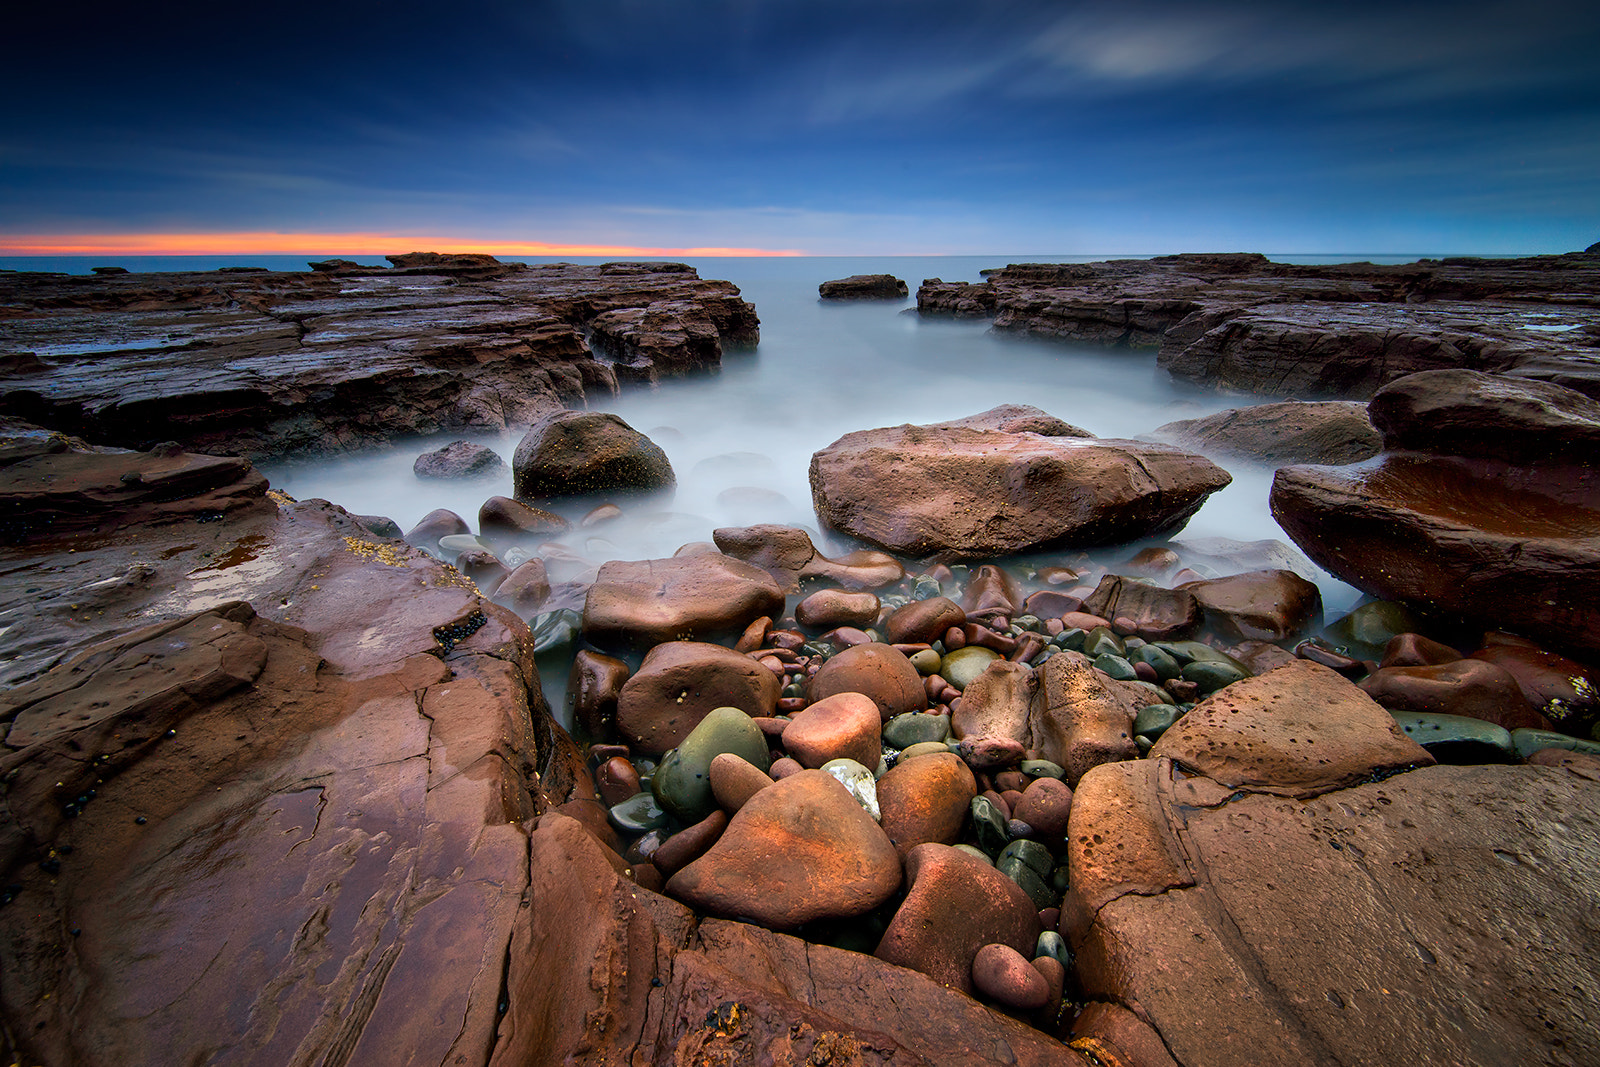 Photograph Rocky rocks by Goff Kitsawad on 500px